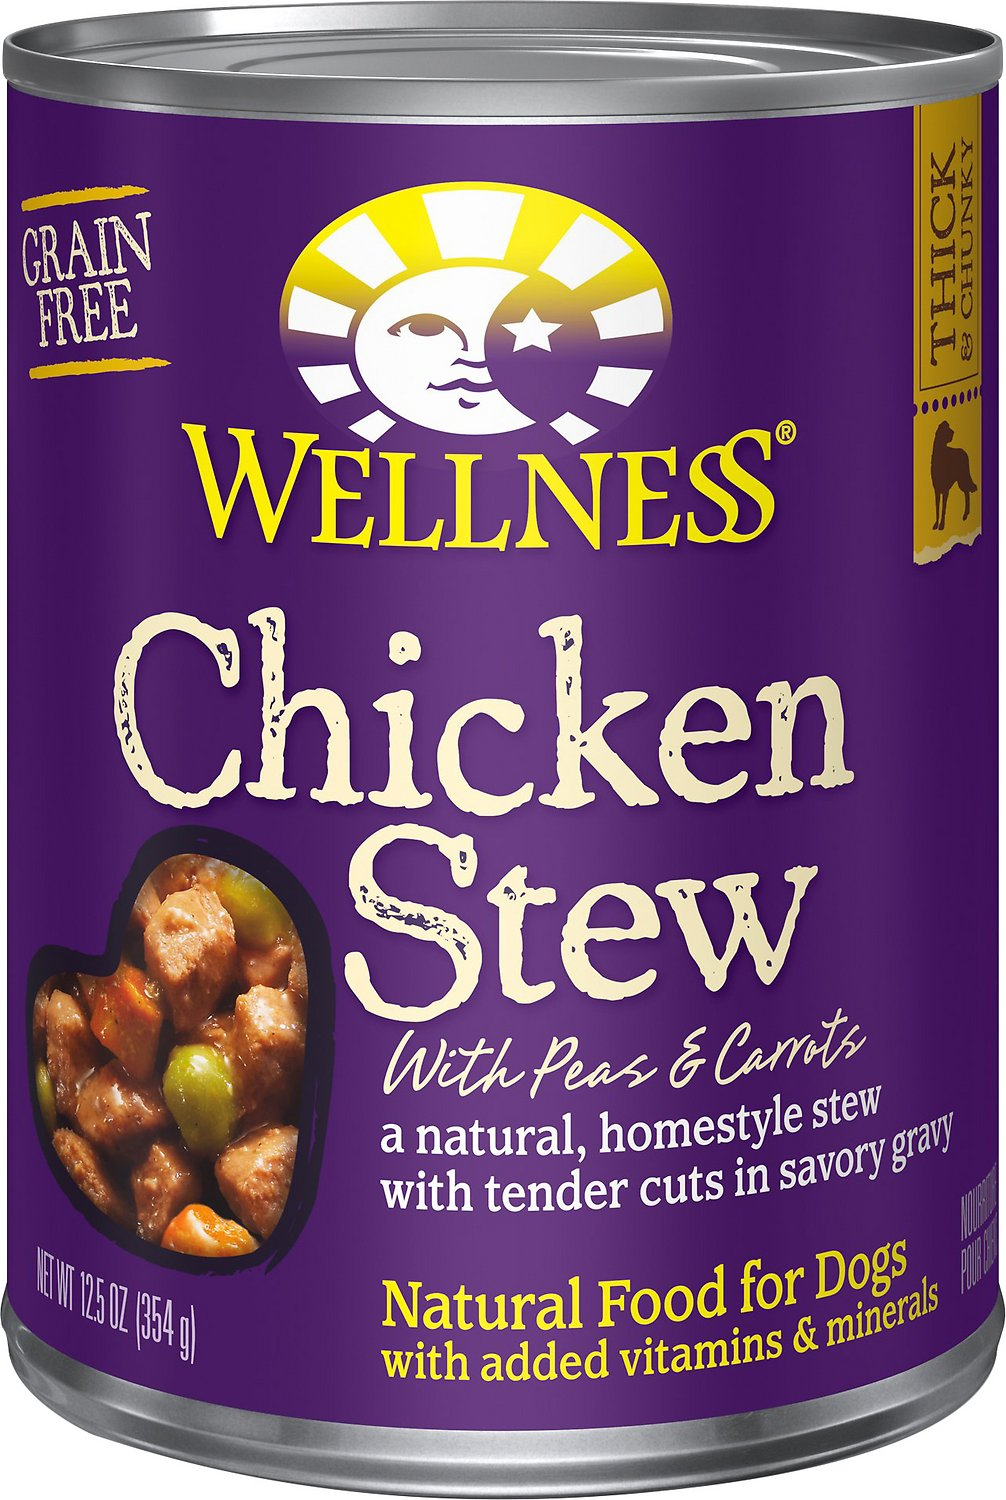 Wellness Chicken Stew with Peas & Carrots Grain-Free Canned Dog Food, 12.5-oz